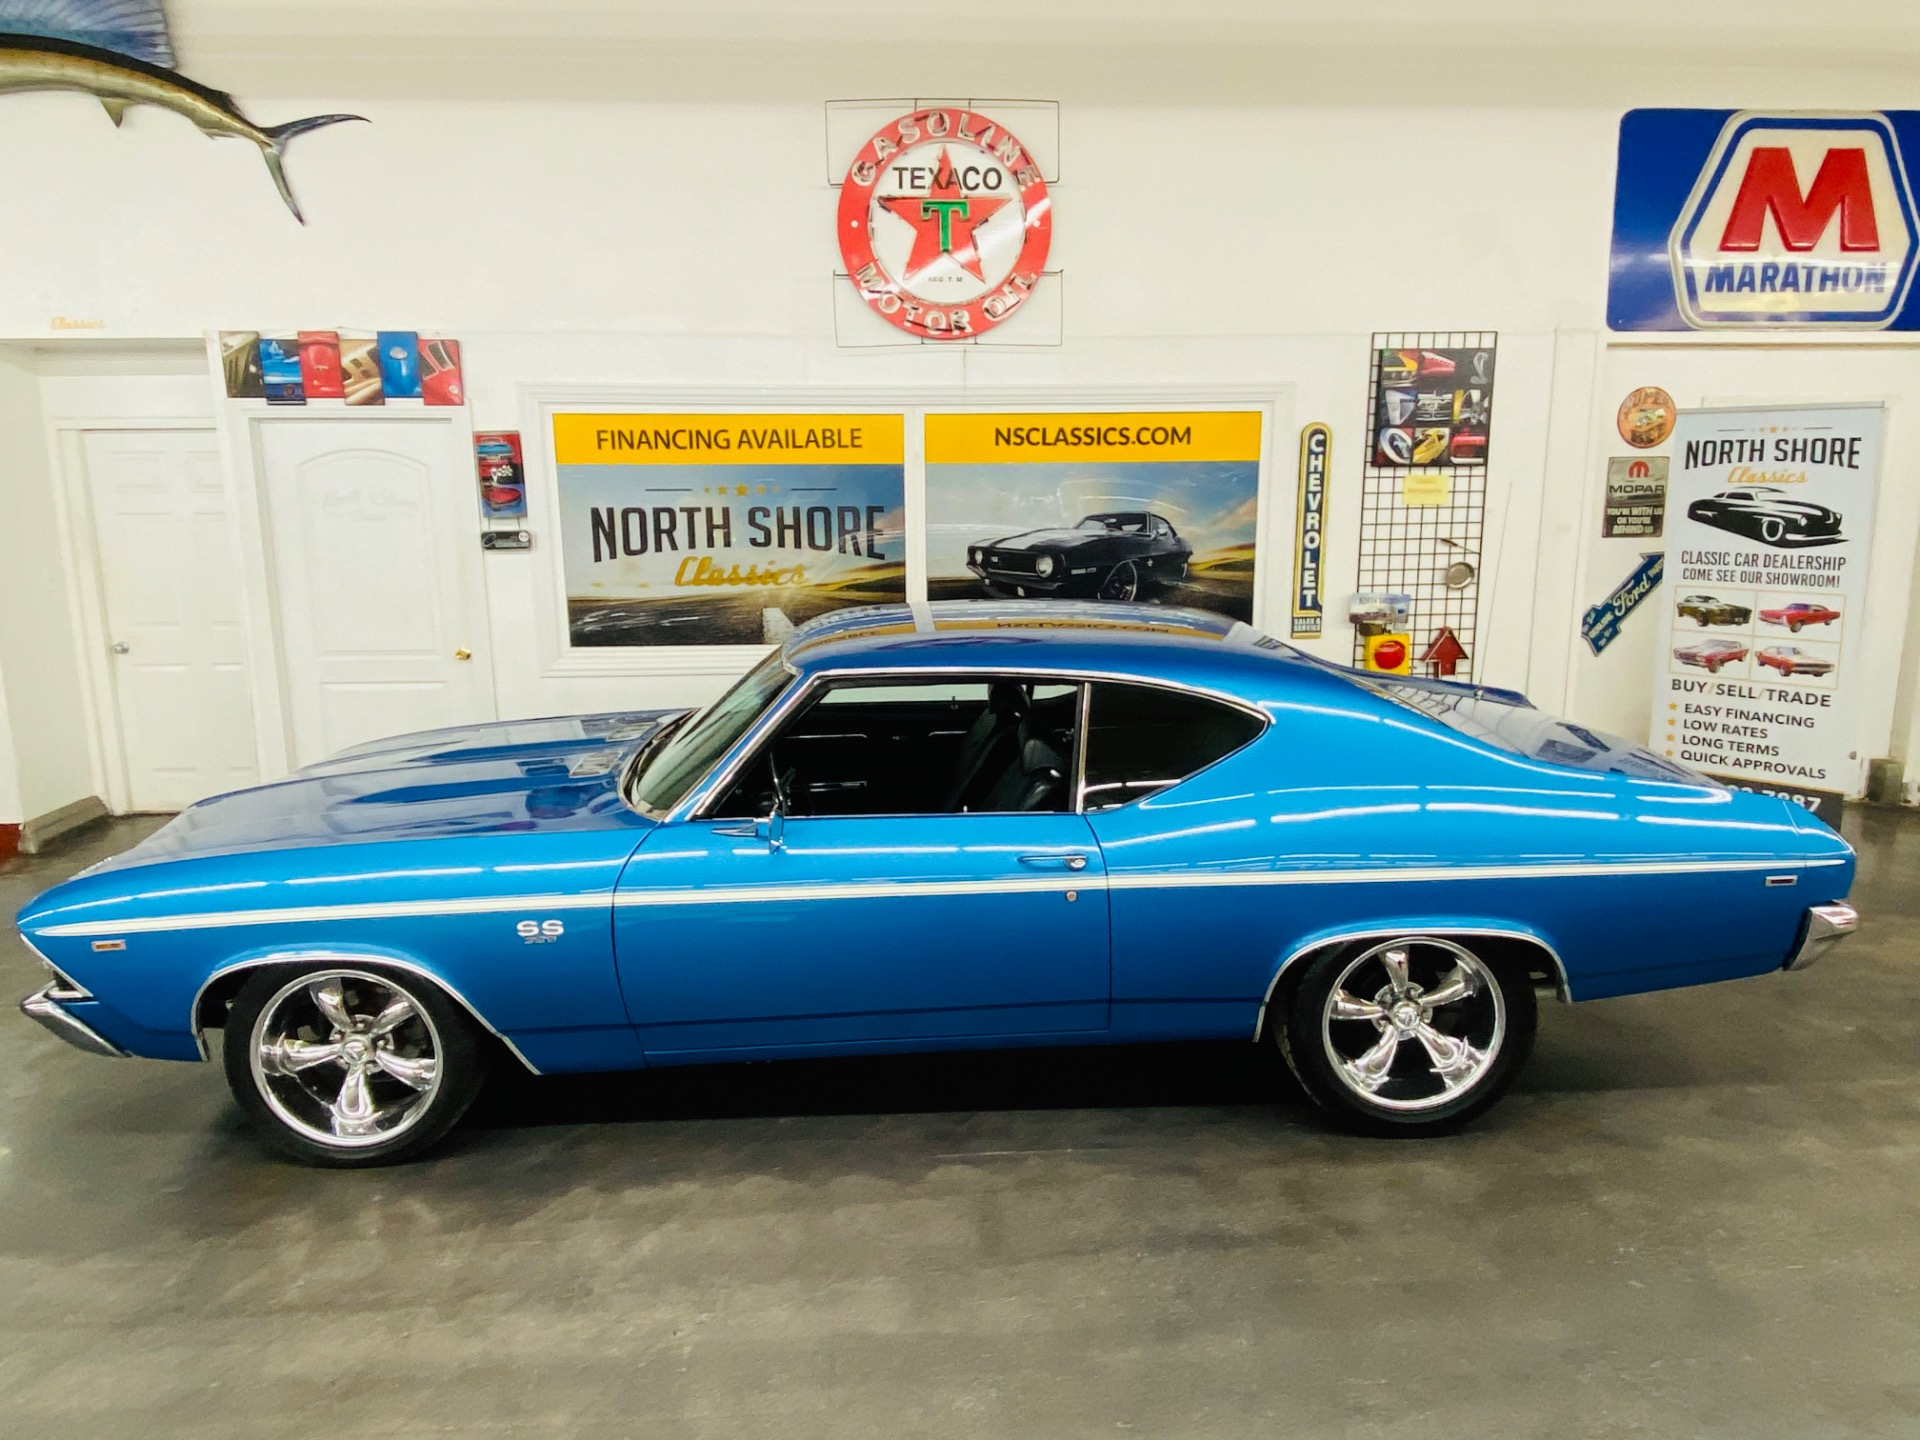 Used 1969 Chevrolet Chevelle - SUPER SPORT - 454 ENGINE - CODE 71 LEMANS BLUE - SEE VIDEO | Mundelein, IL